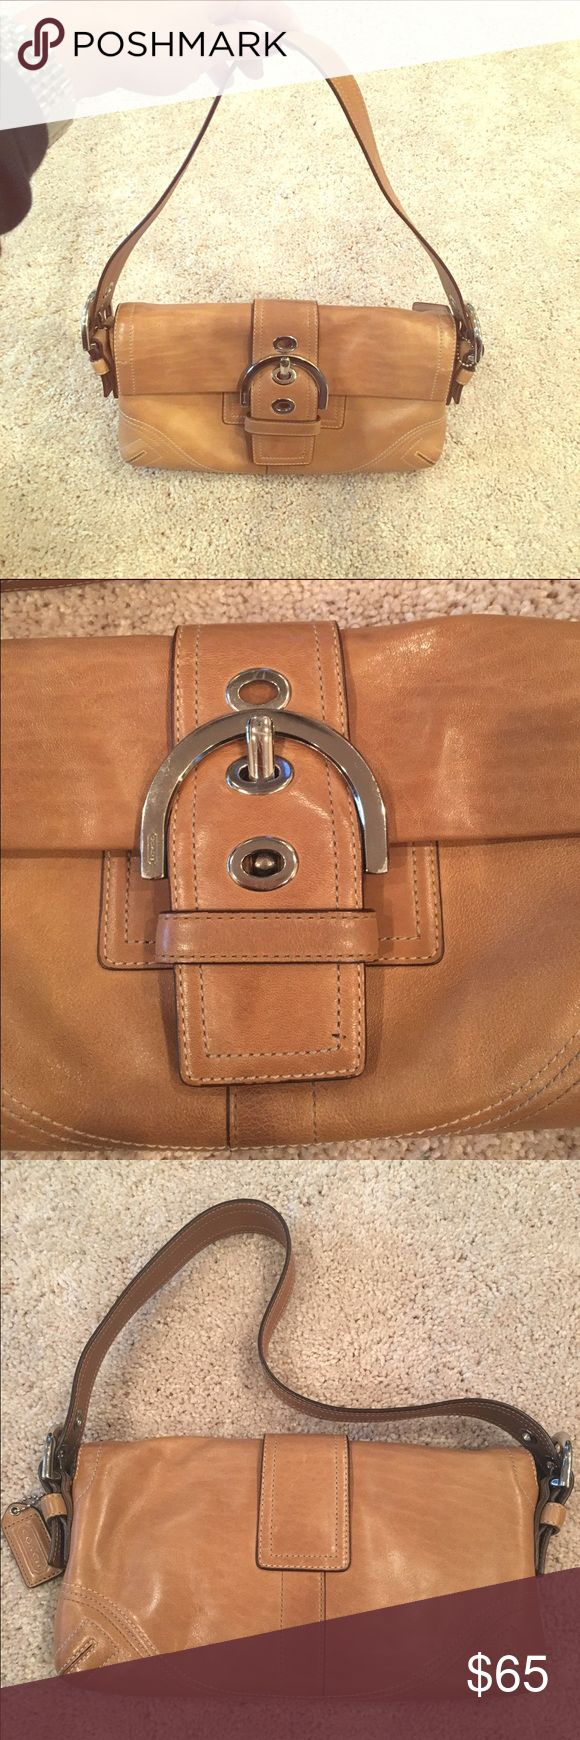 Tan Coach Clutch LIKE NEW! Tan leather Coach purse. Looks brand new! From a smoke free home. Matches so many outfits! Perfect for all year... Just trying to make more space in my closet 💕 Need more pictures or have questions? Just ask!👍🏼 Always try an offer! Coach Bags Shoulder Bags